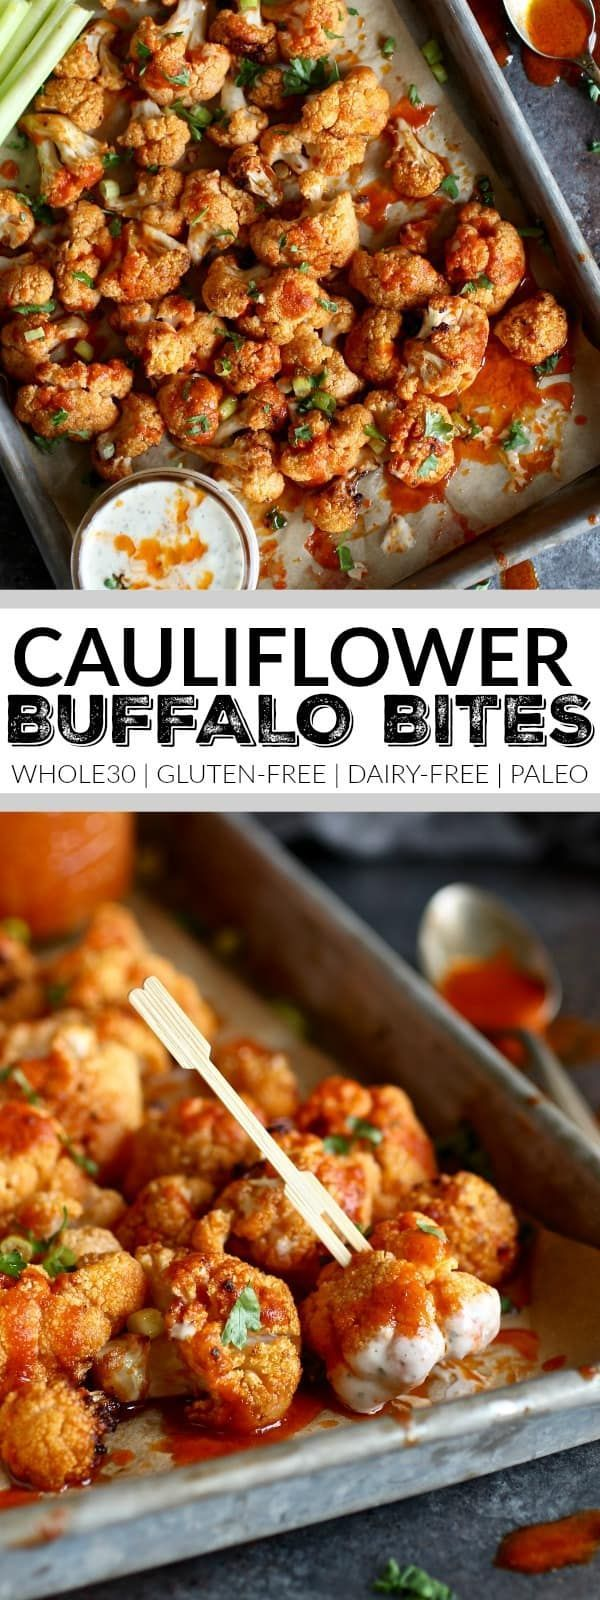 Photo of Cauliflower Buffalo Bites (Whole30)